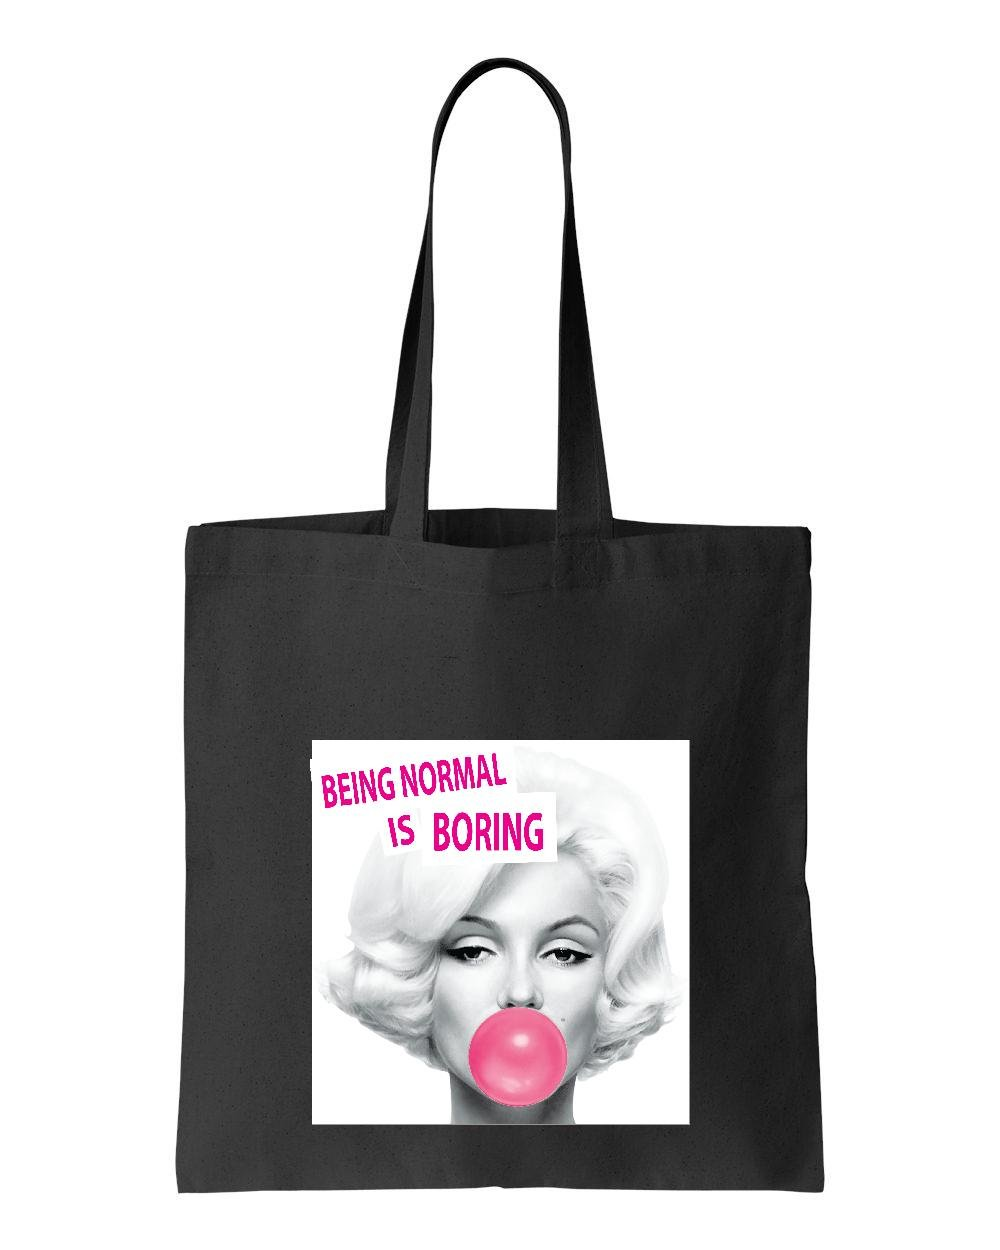 Ugo Marilyn Monroe Being Normal is Boring Gift for Monroe Quotes Lovers Match w Poster Tote Handbags Bags Work School Travel